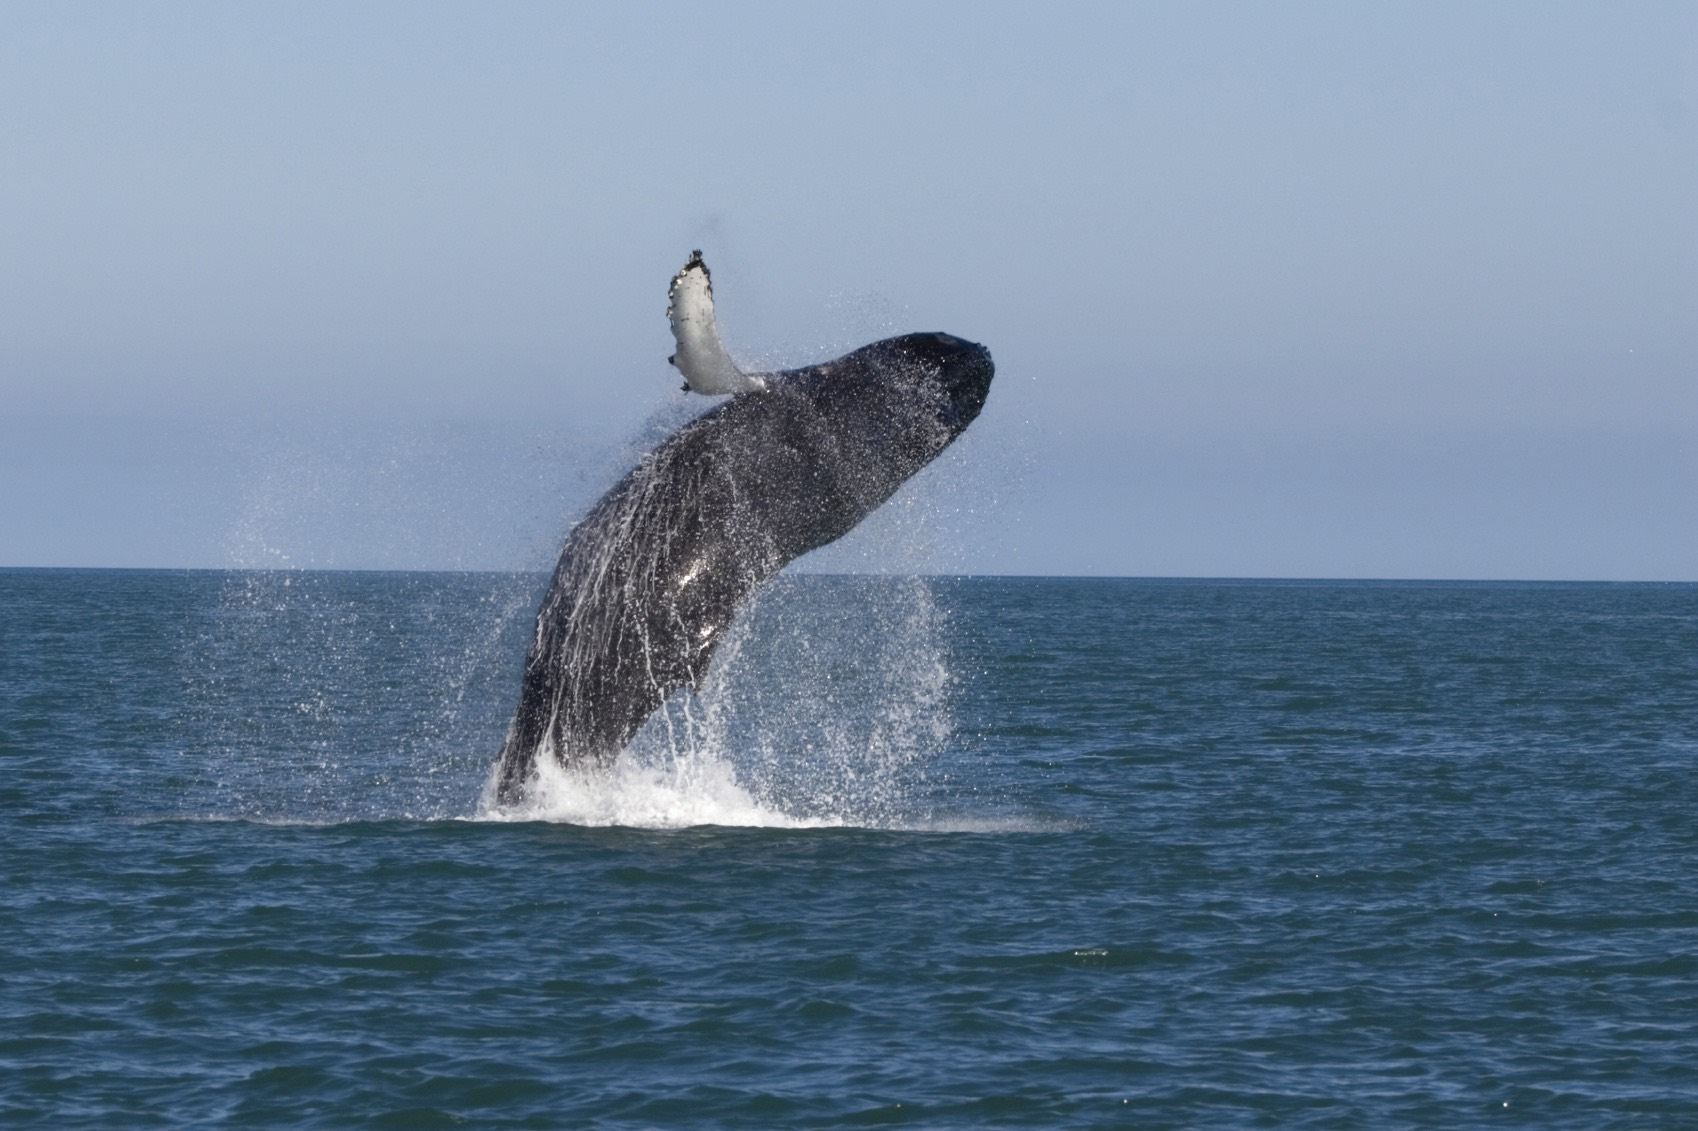 Whale breaching off Iceland